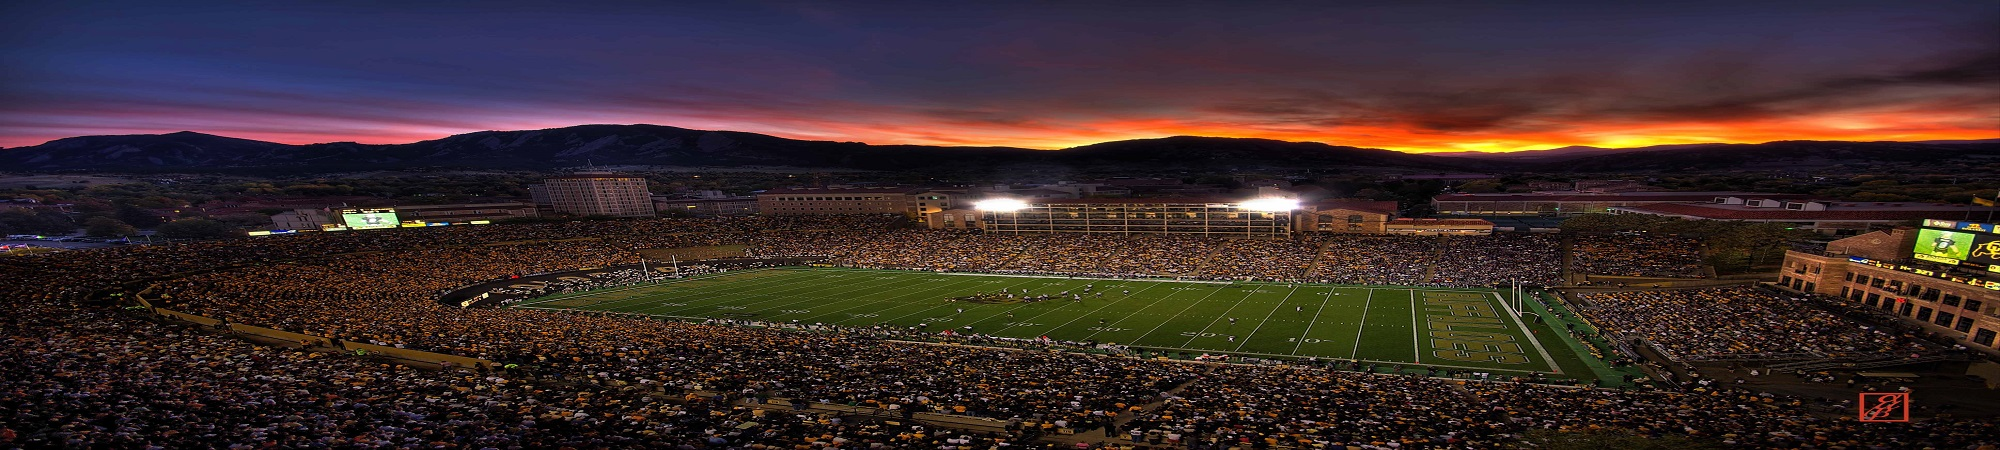 Folsom Field Sunset